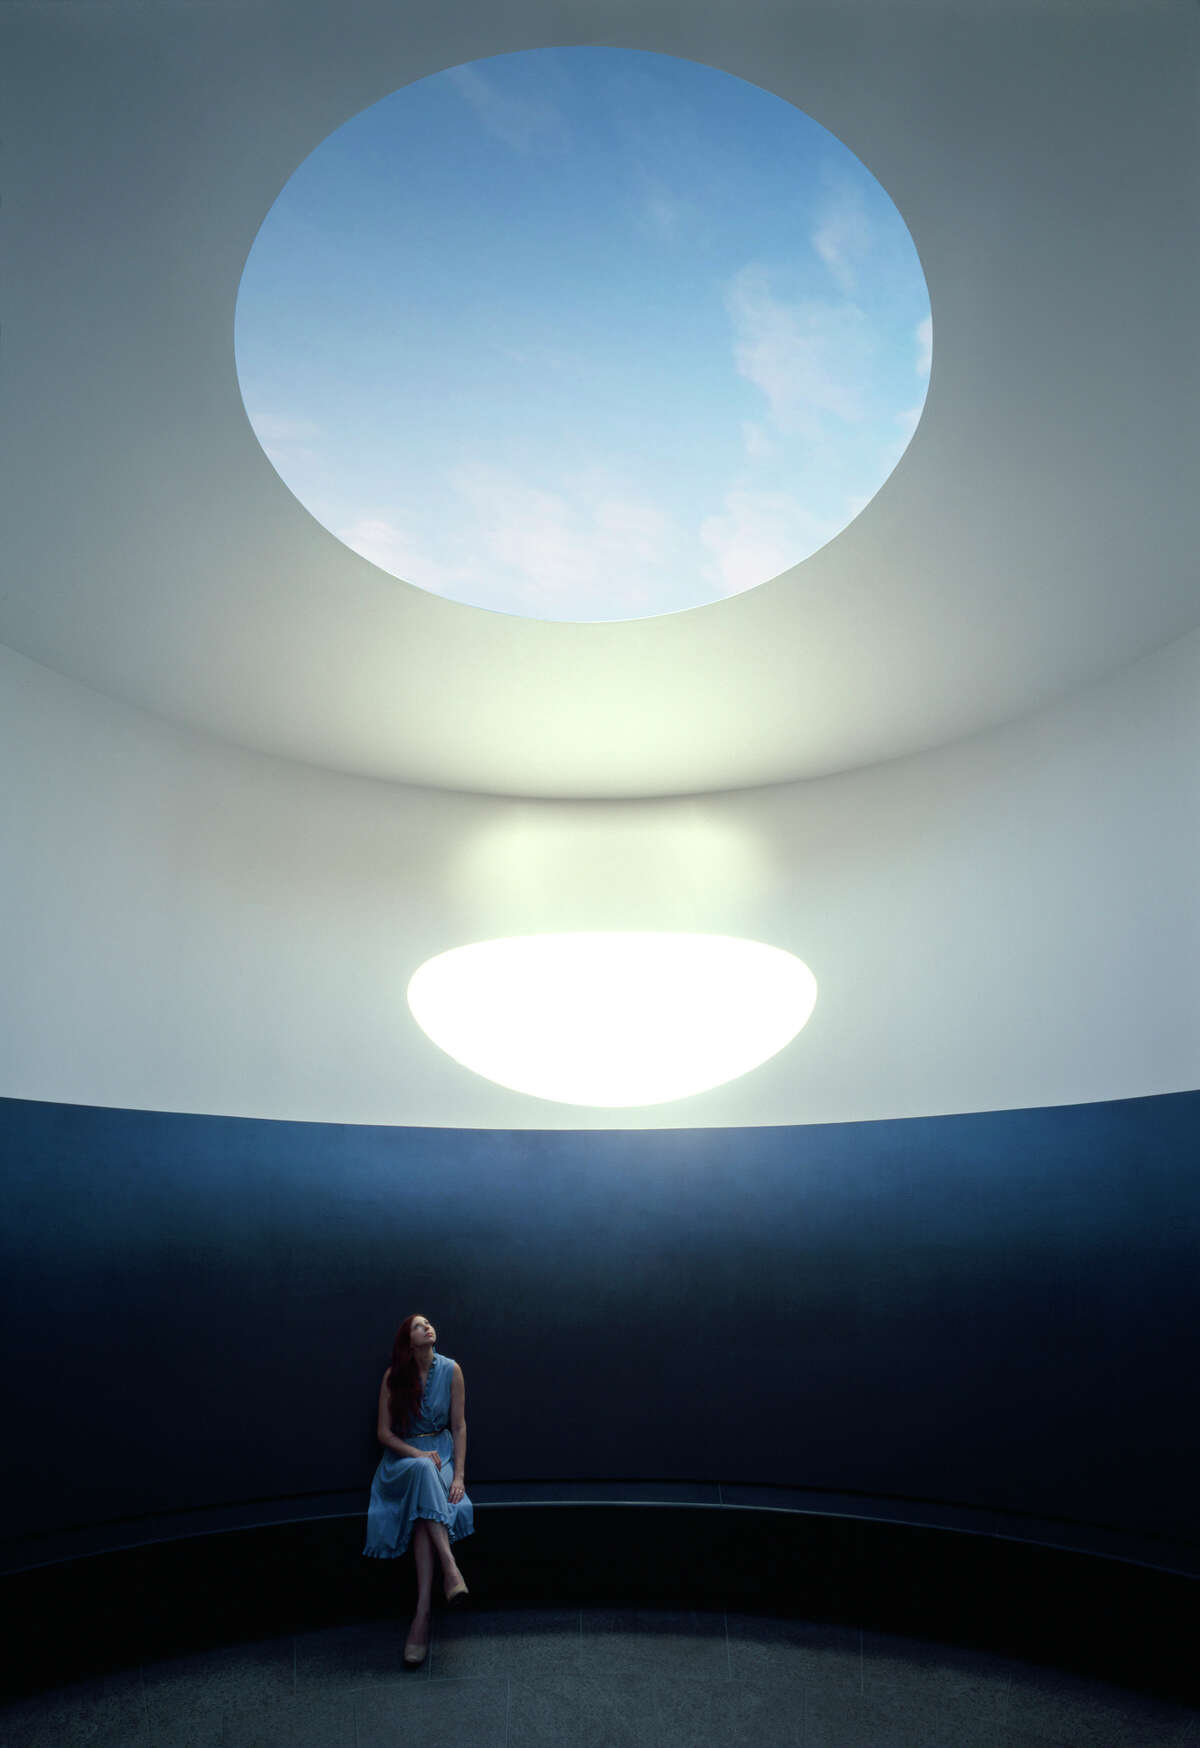 """""""The Color Inside,"""" the new James Turrell skyspace installation atop the Student Activity Center at the University of Texas at Austin, has an elliptical cylinder shape with a built-in bench for 25 people."""